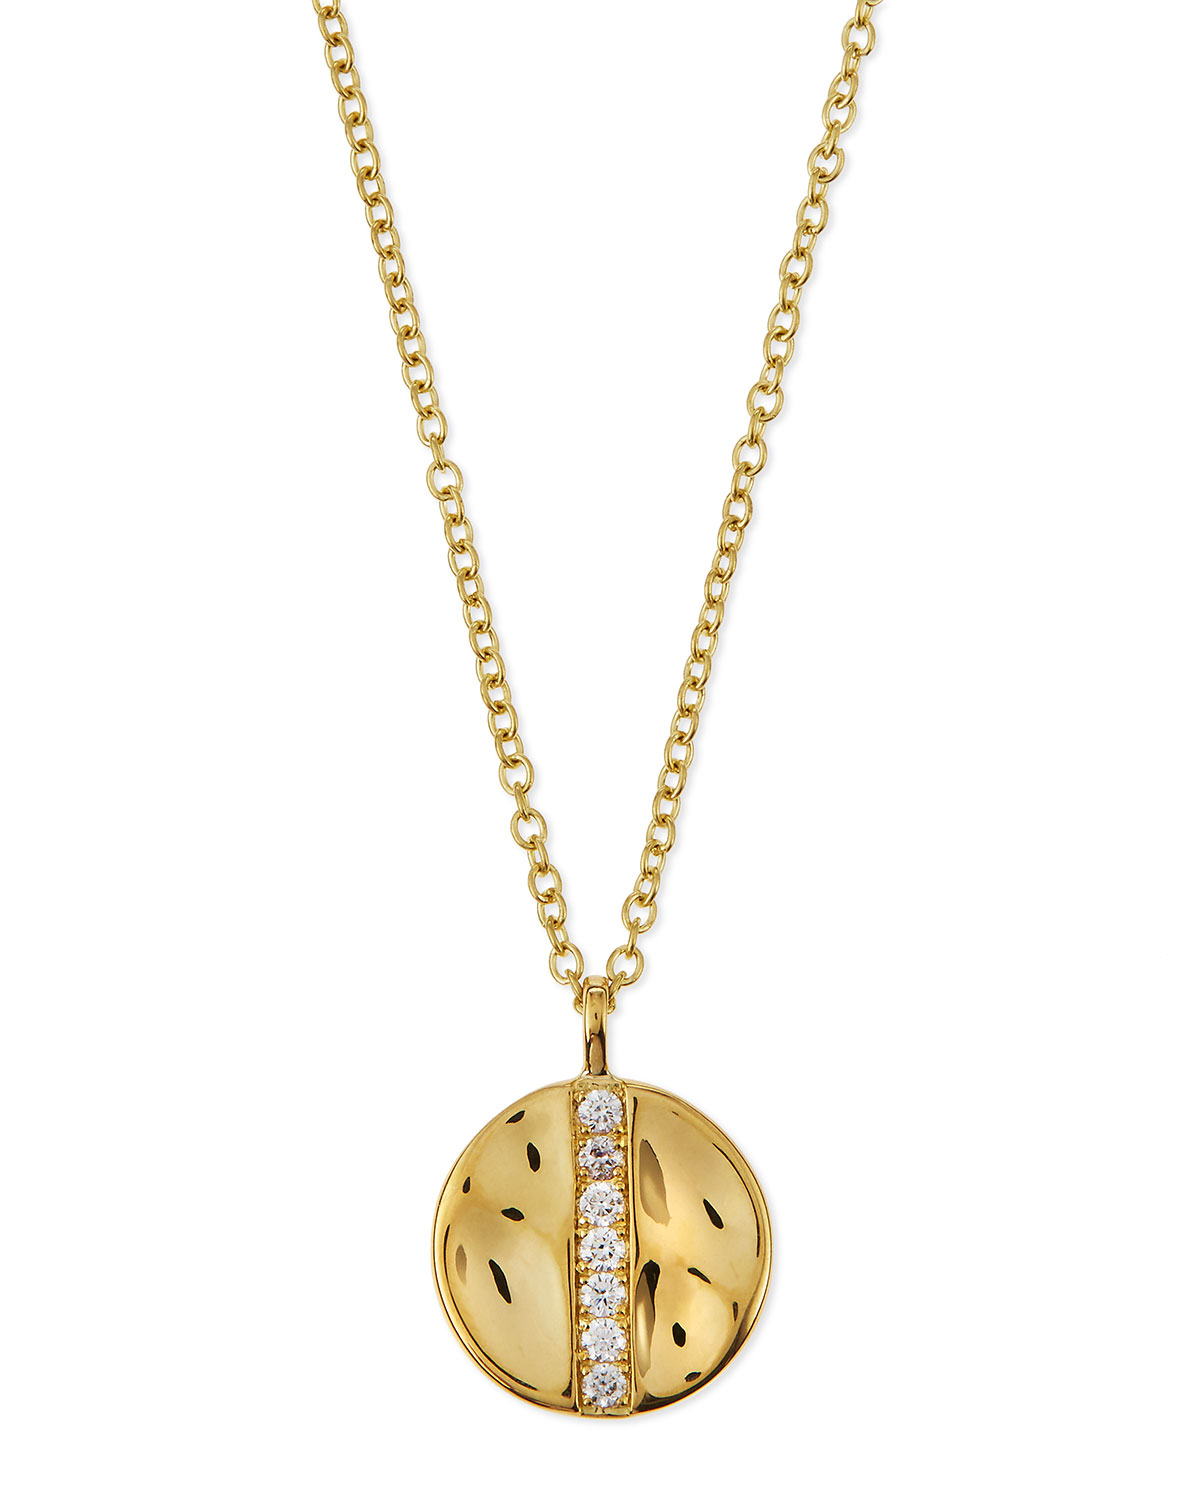 Ippolita 18K Gold Senso™ Medium 15.5mm Disc Pendant Necklace with Diamonds